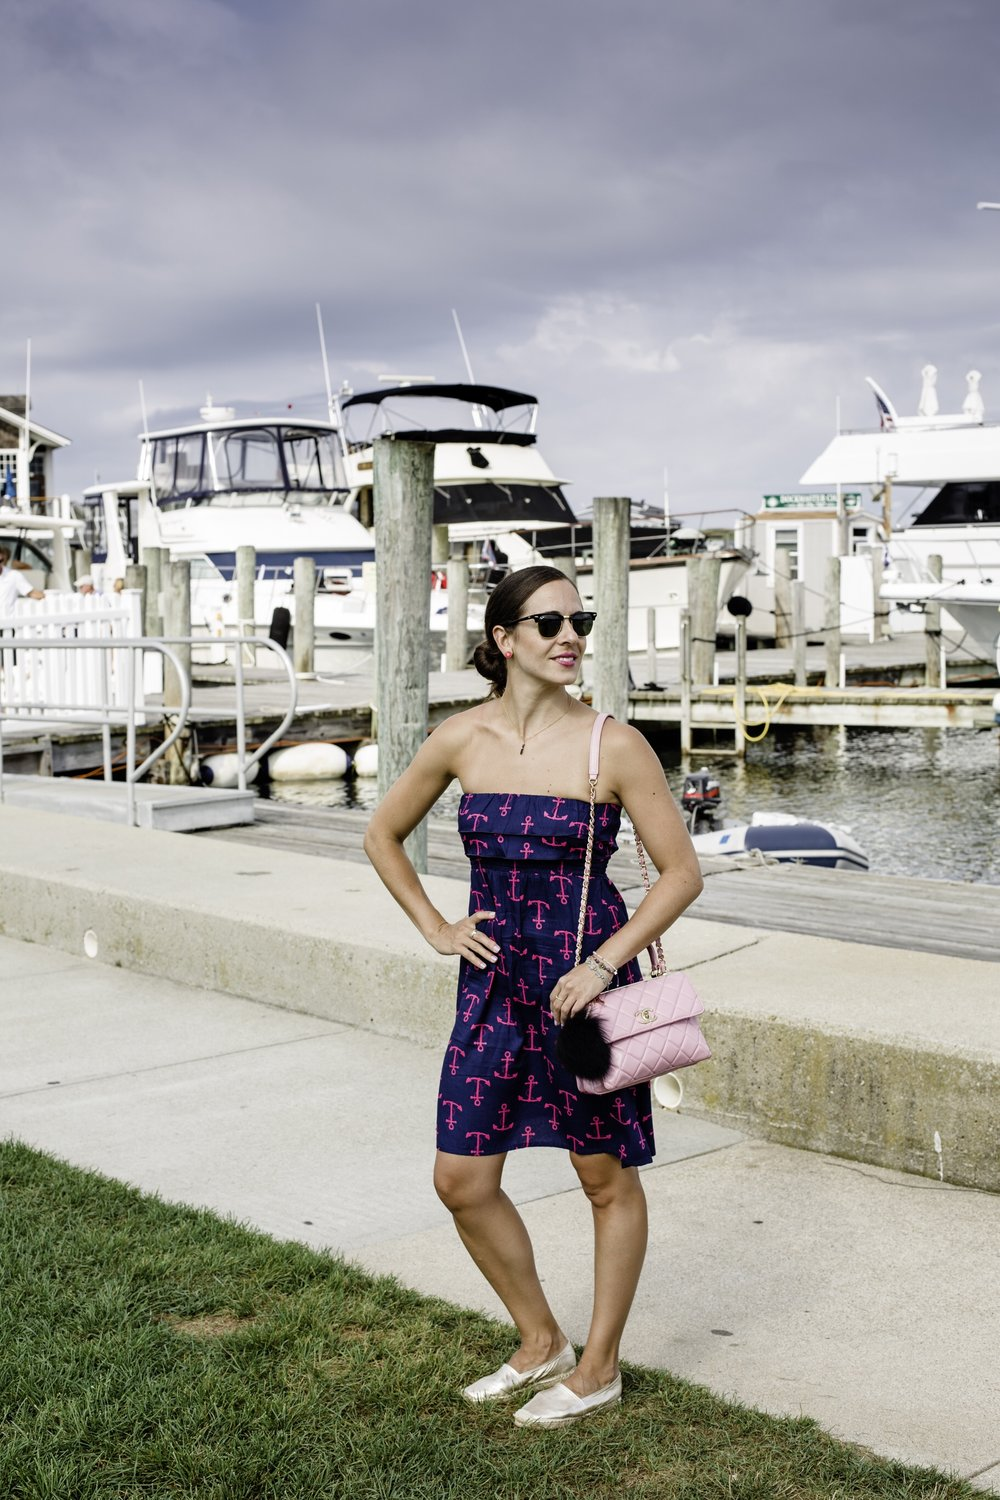 Wearing my new anchor dress I bought in a small boutique on Block Island this summer by designer Escapada, and gold Maypol espadrille flats also a recent buy from TJ Maxx. I topped it off with an oldie but goodie pink Chanel quilted purse. Photography by Francisco Graciano.